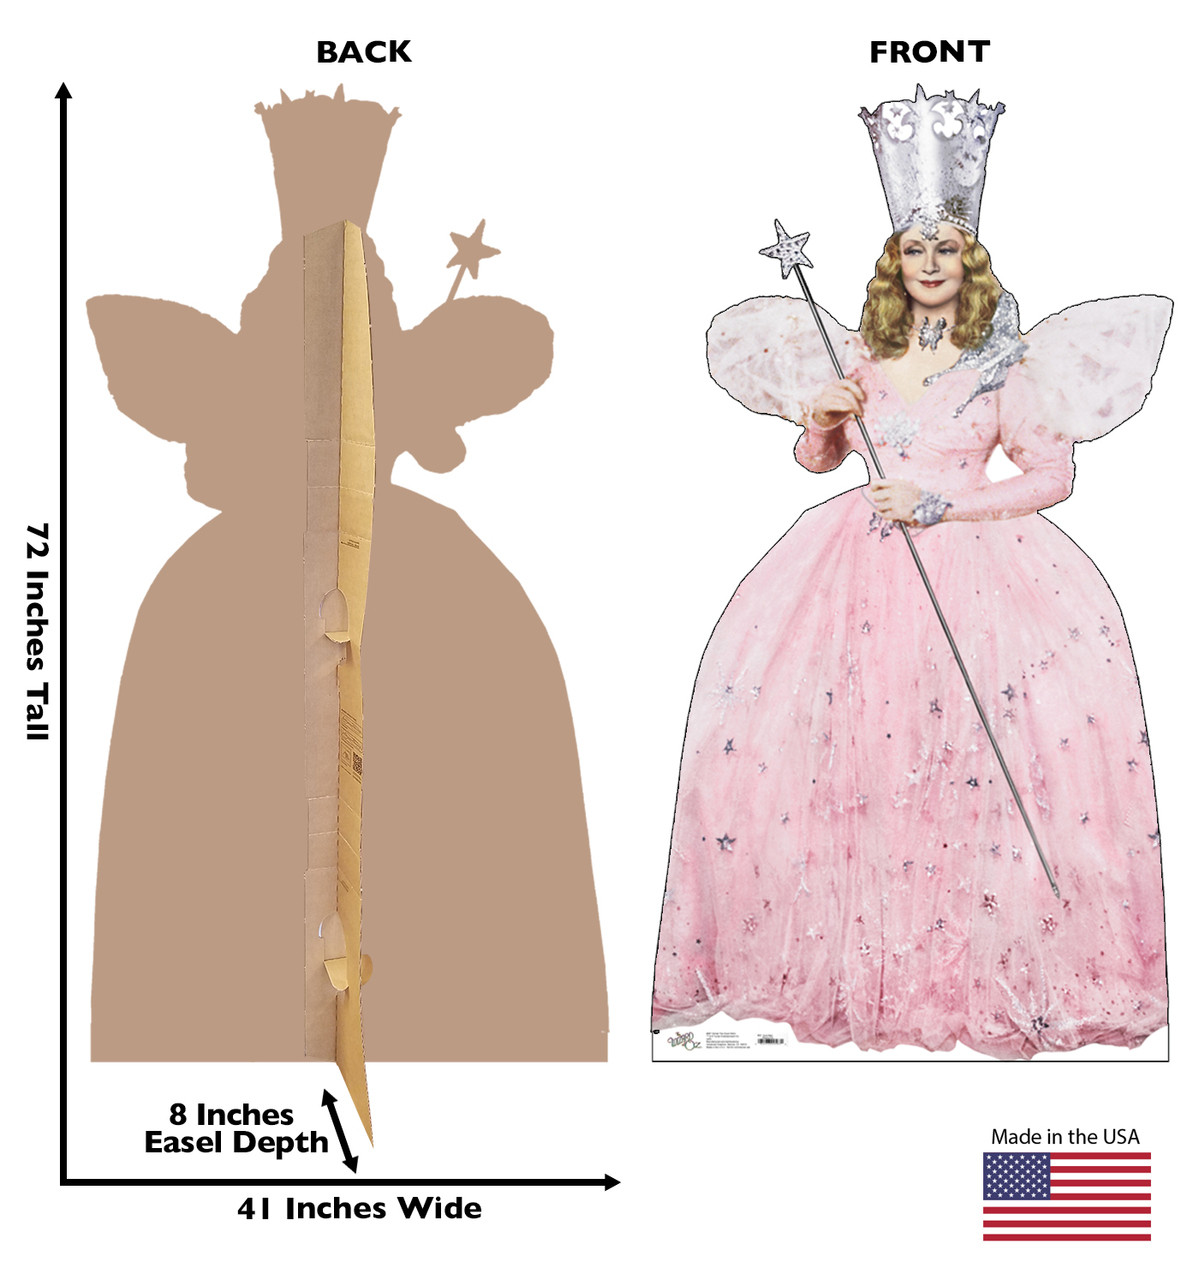 Life size Cardboard Cutout Standee of Glinda the Good With from the Wizard of Oz with dimensions